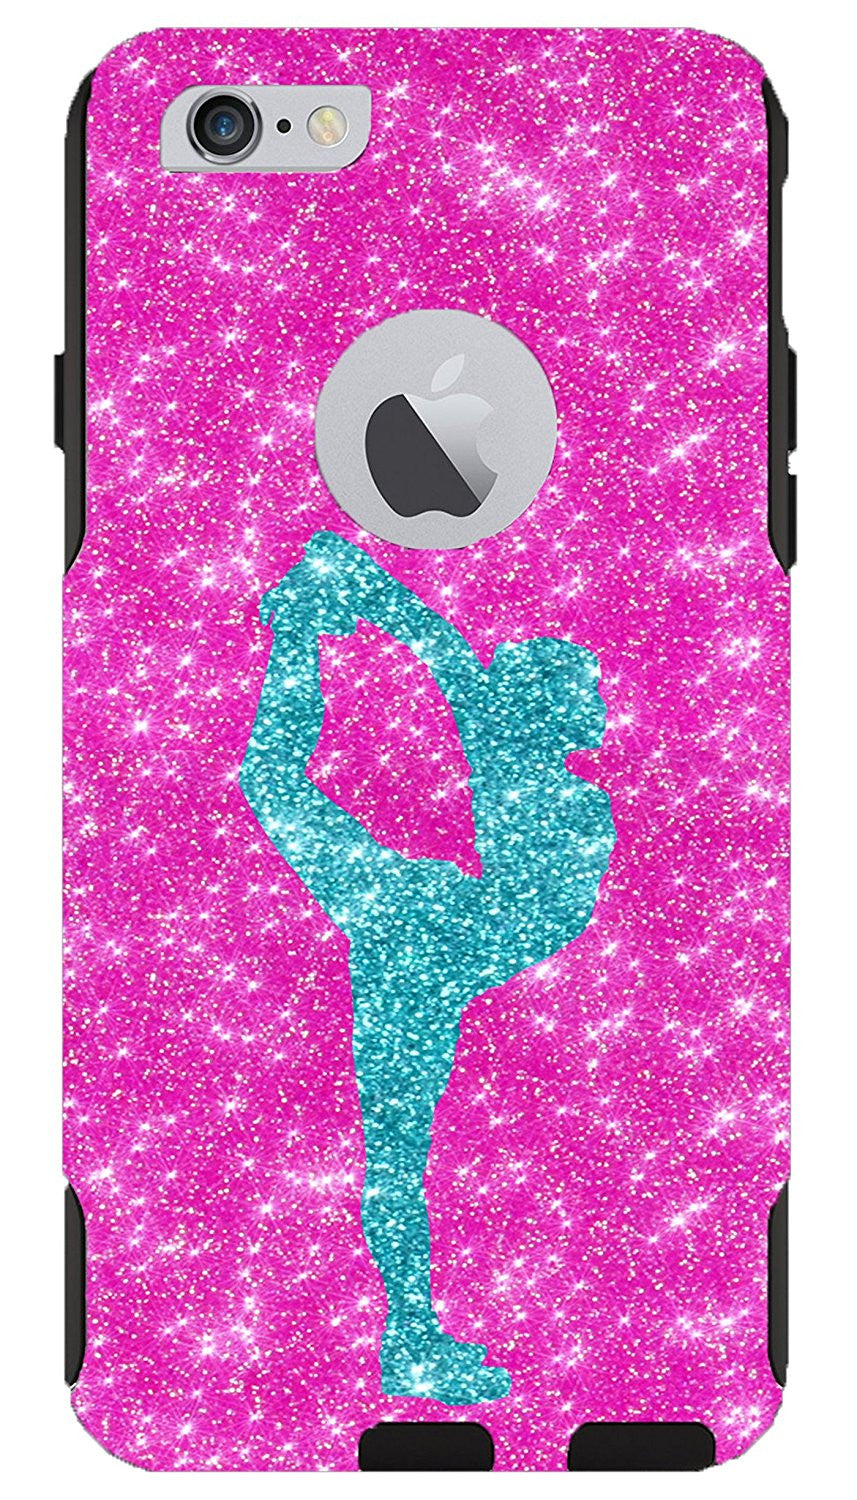 reputable site 9d50d 9a939 iPhone 6 Case - OtterBox Commuter Series - Retail Packaging - 4.7 iPhone 6  Glitter Paradise Cheerleader Scorpion Hot Pink/Black